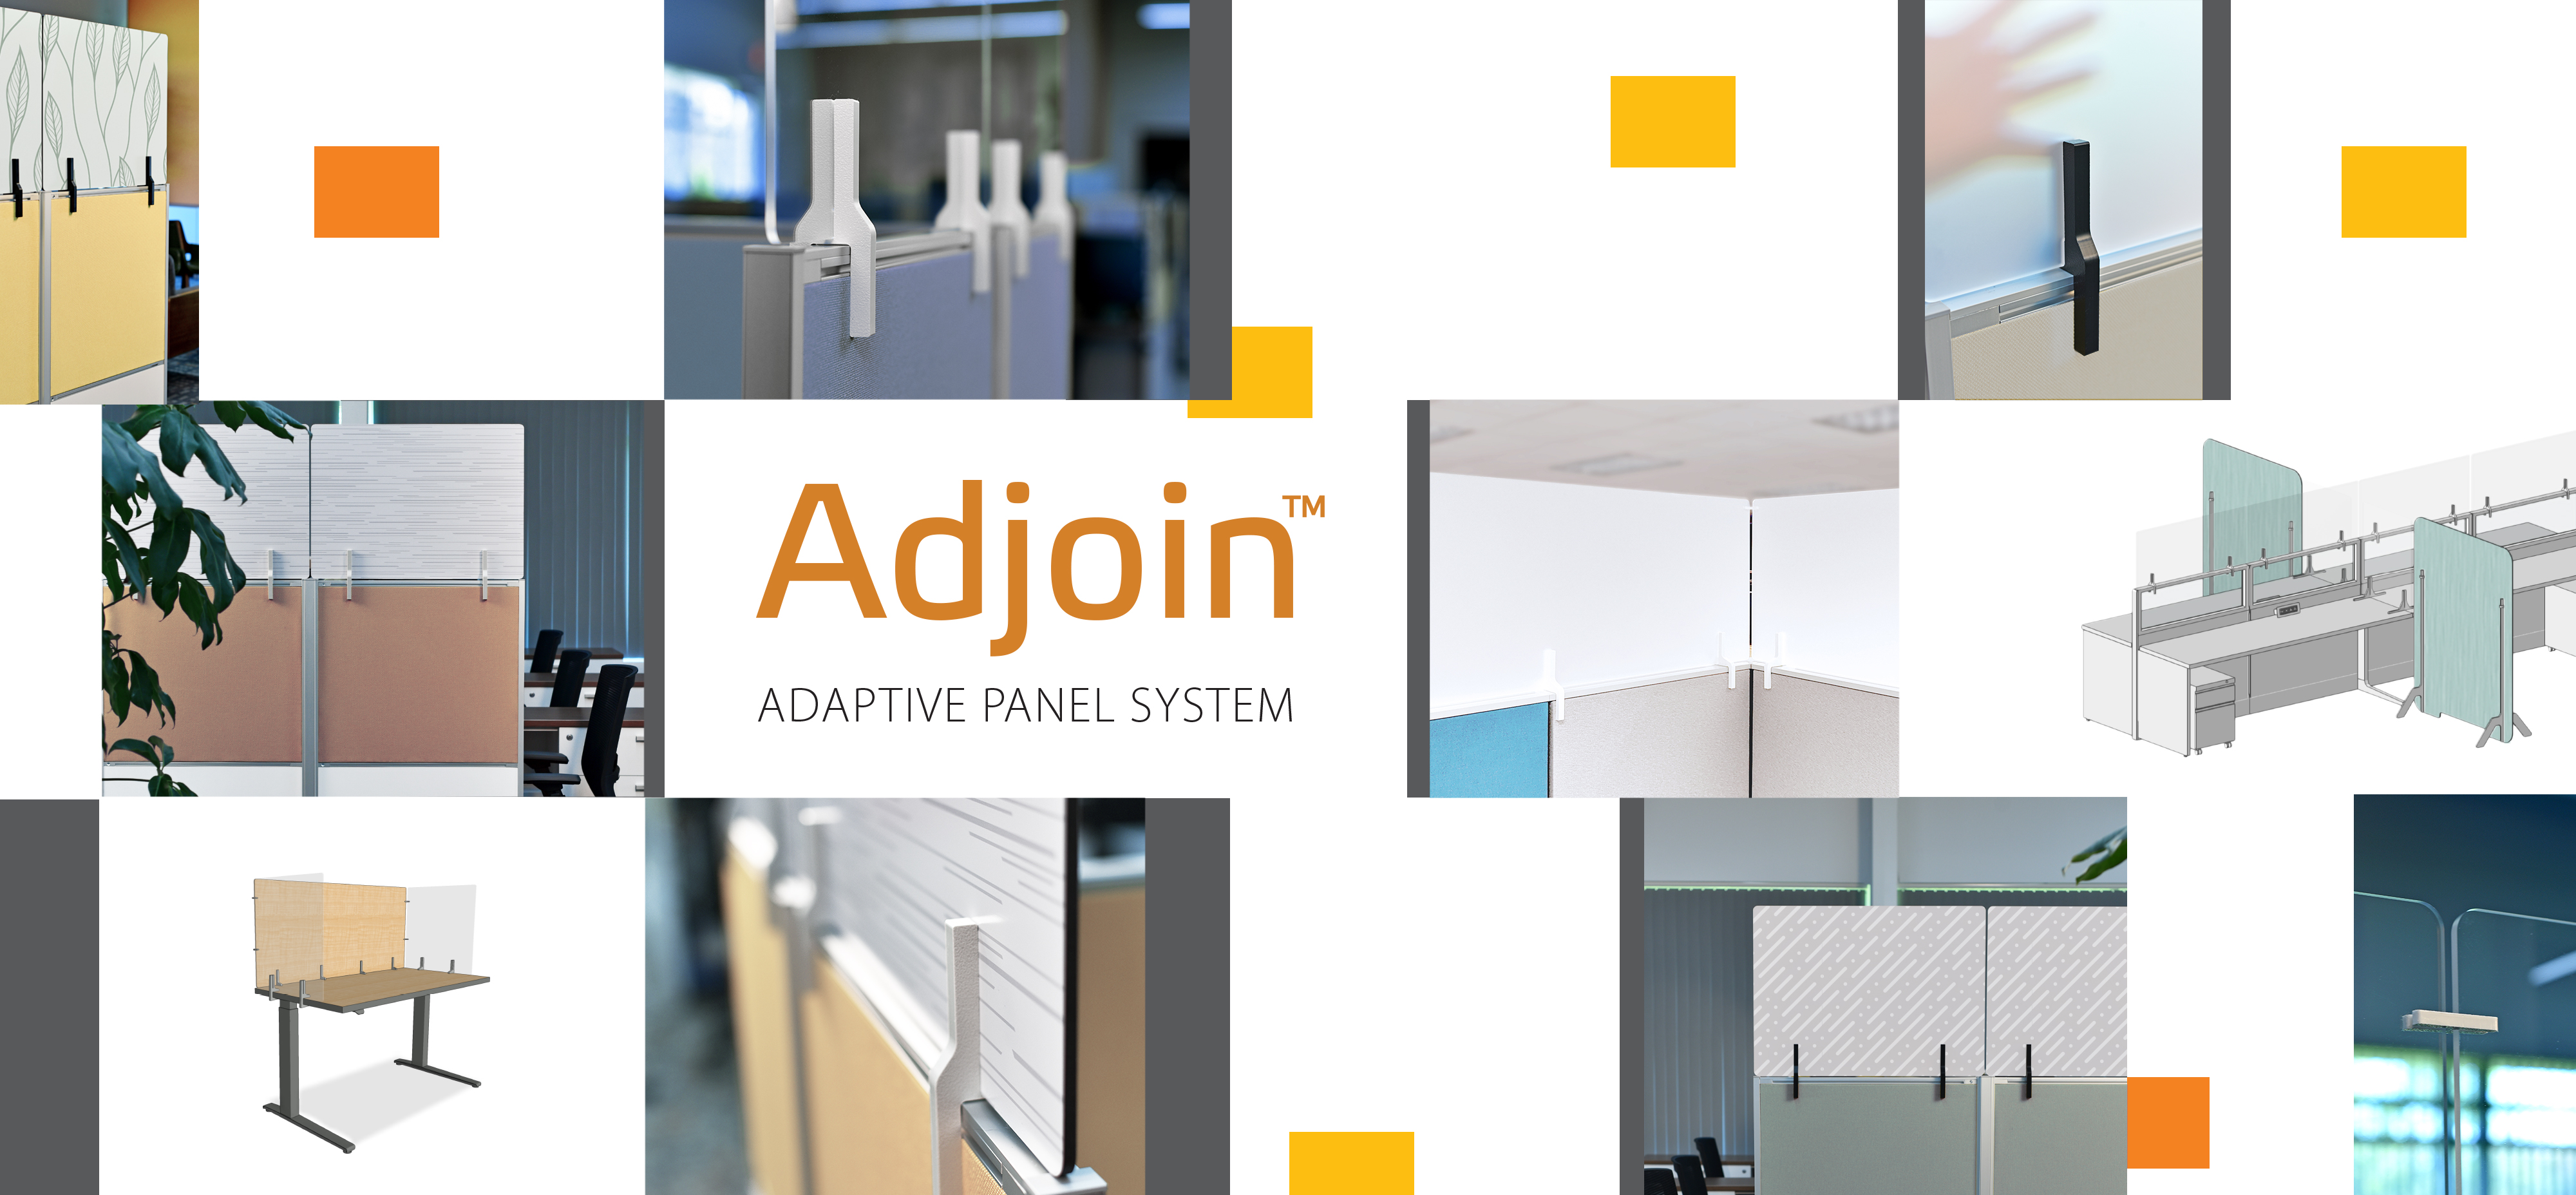 This Adjoin Adaptive Panel System for workstations home page image displays the creative options as well as the adapter that makes installation fast and easy.